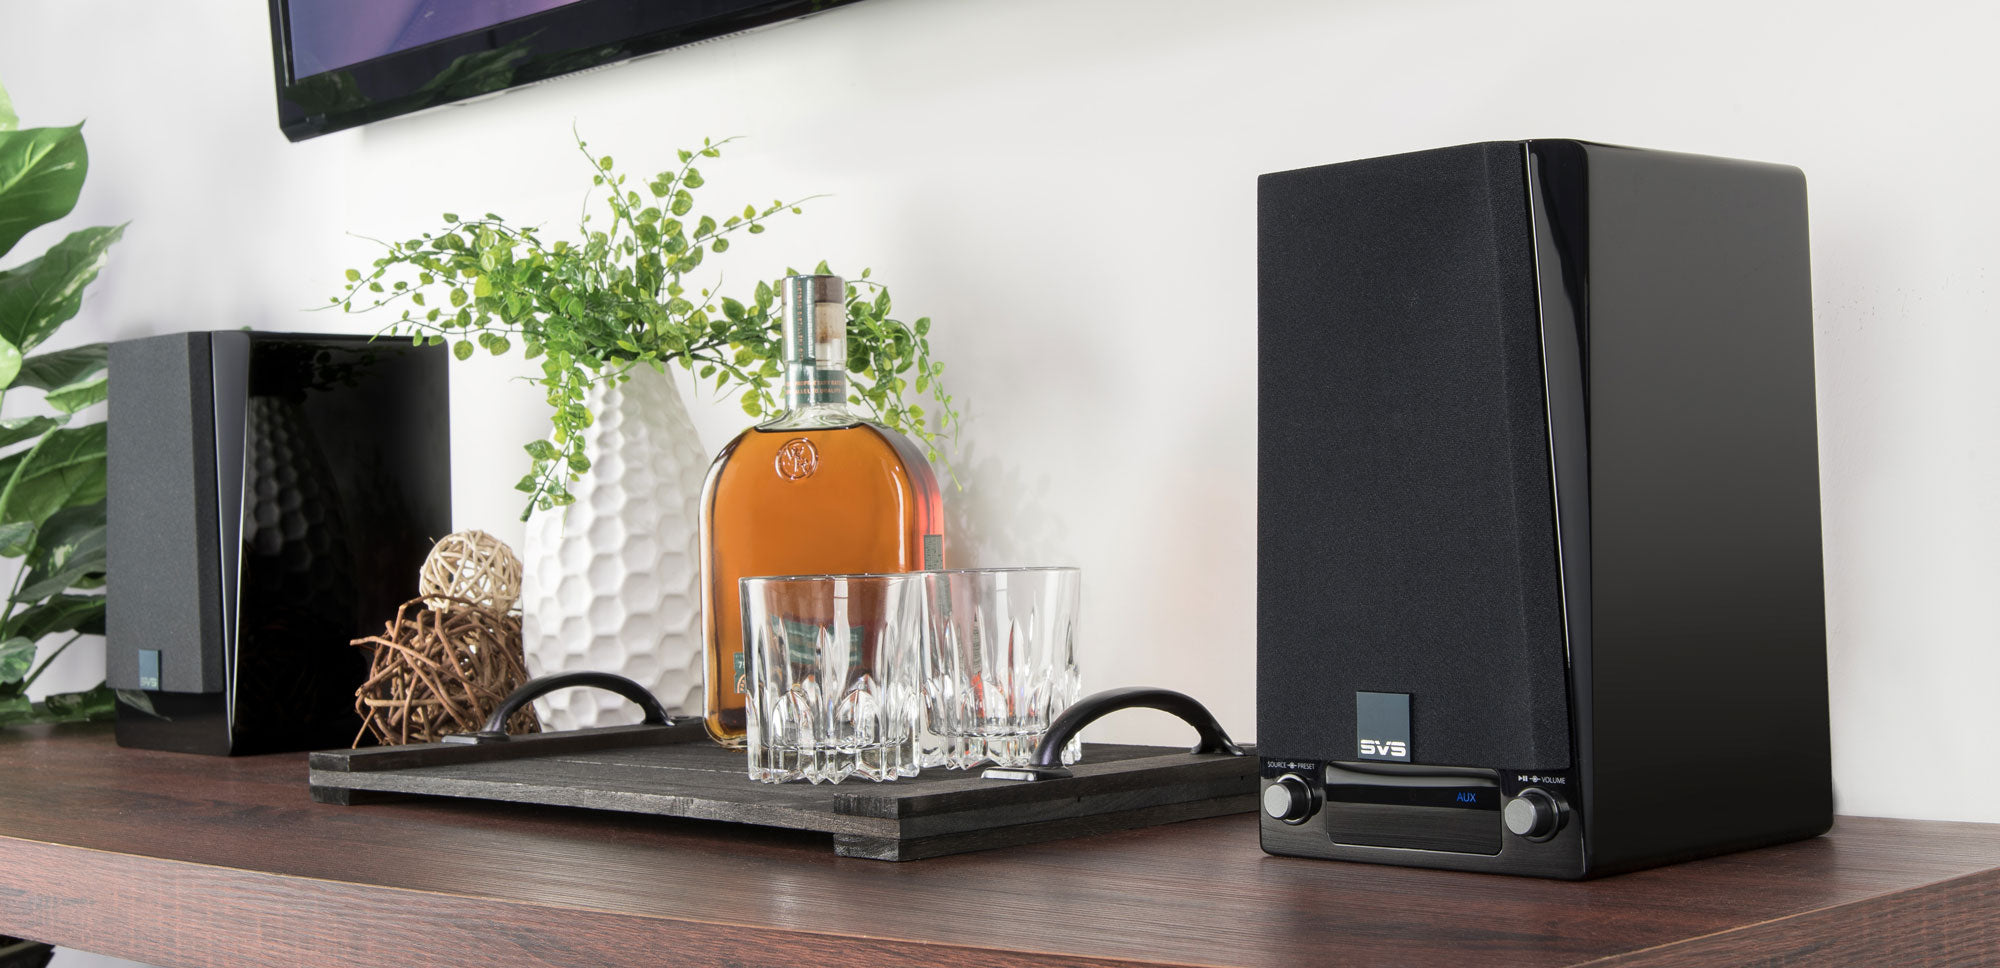 Svs Prime Wireless Speaker System And Soundbase How To Build A Low Power Audio Amplifier Reference Quality Sound The Delivers All Benefits Of Powered Smart With Uncompromising